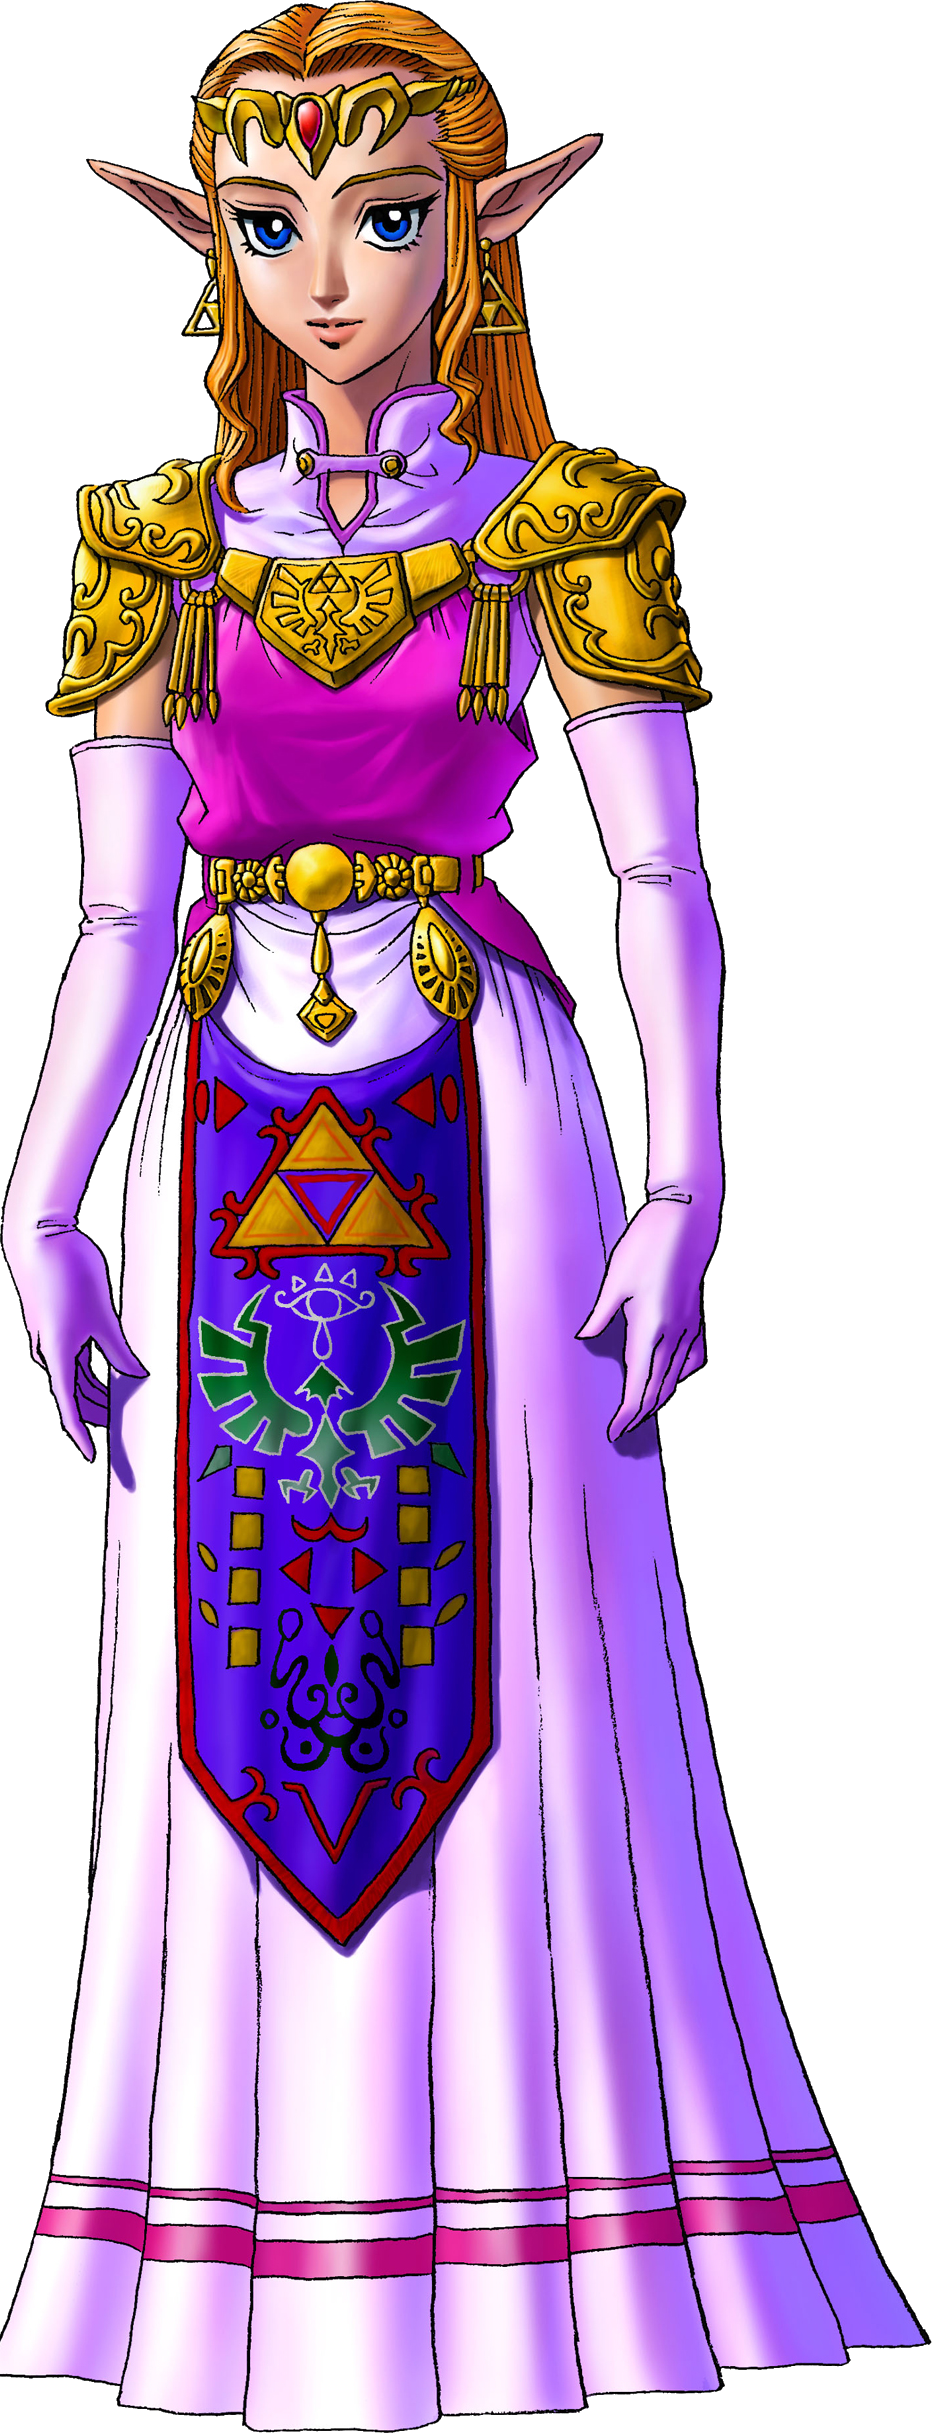 Image result for ocarina of time princess zelda png